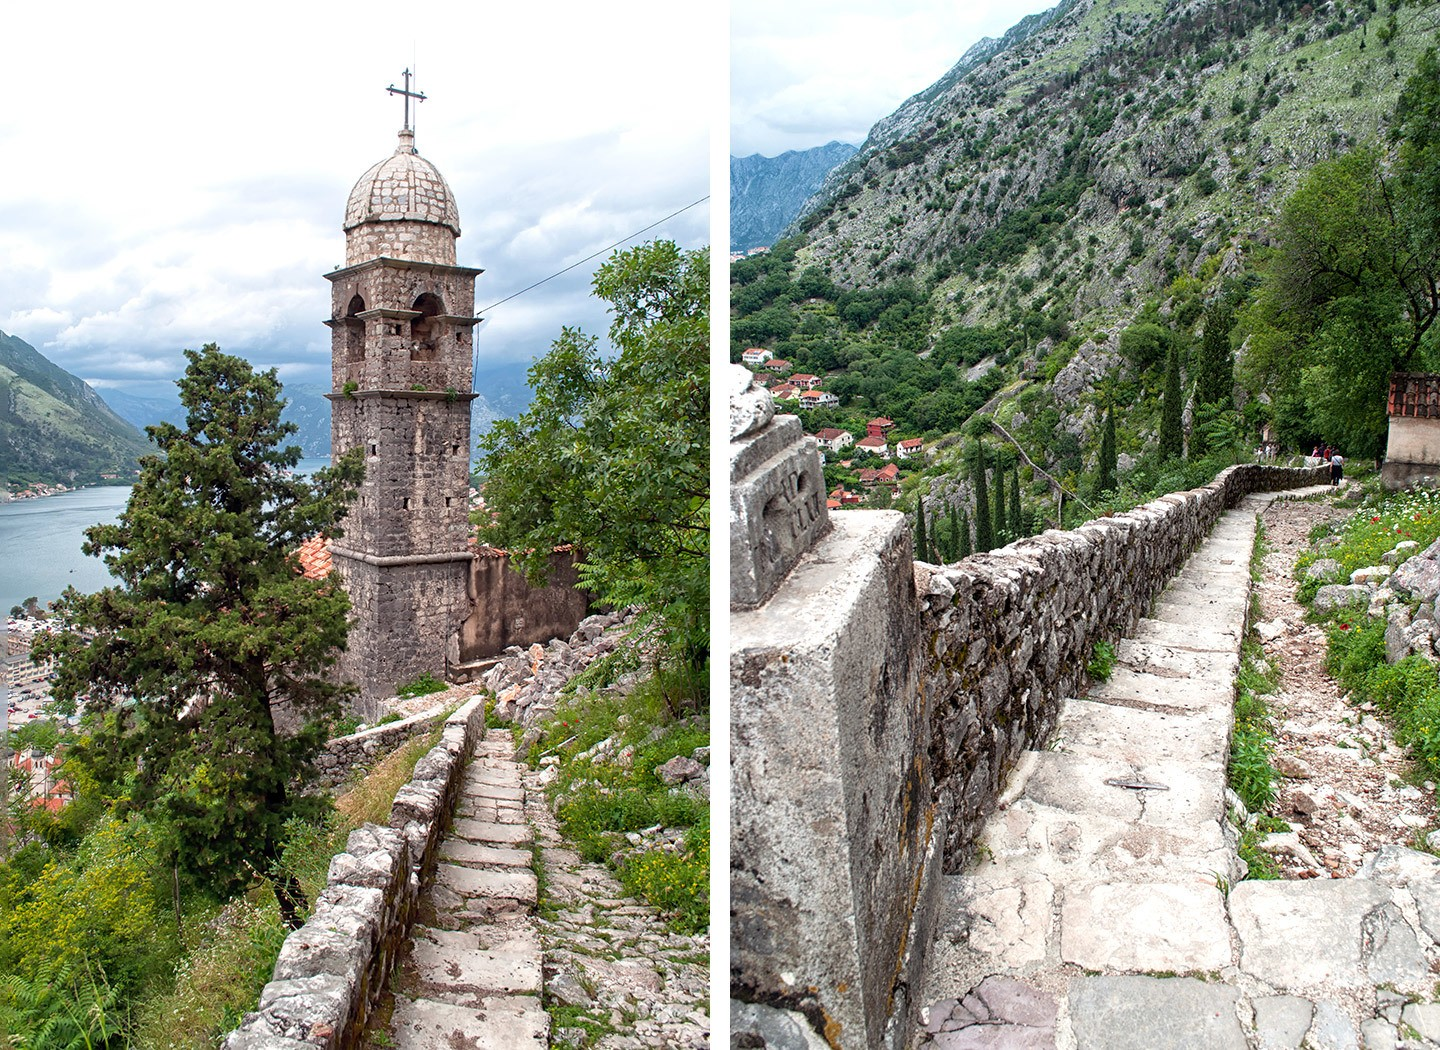 The Church of Our Lady of Remedy in Kotor